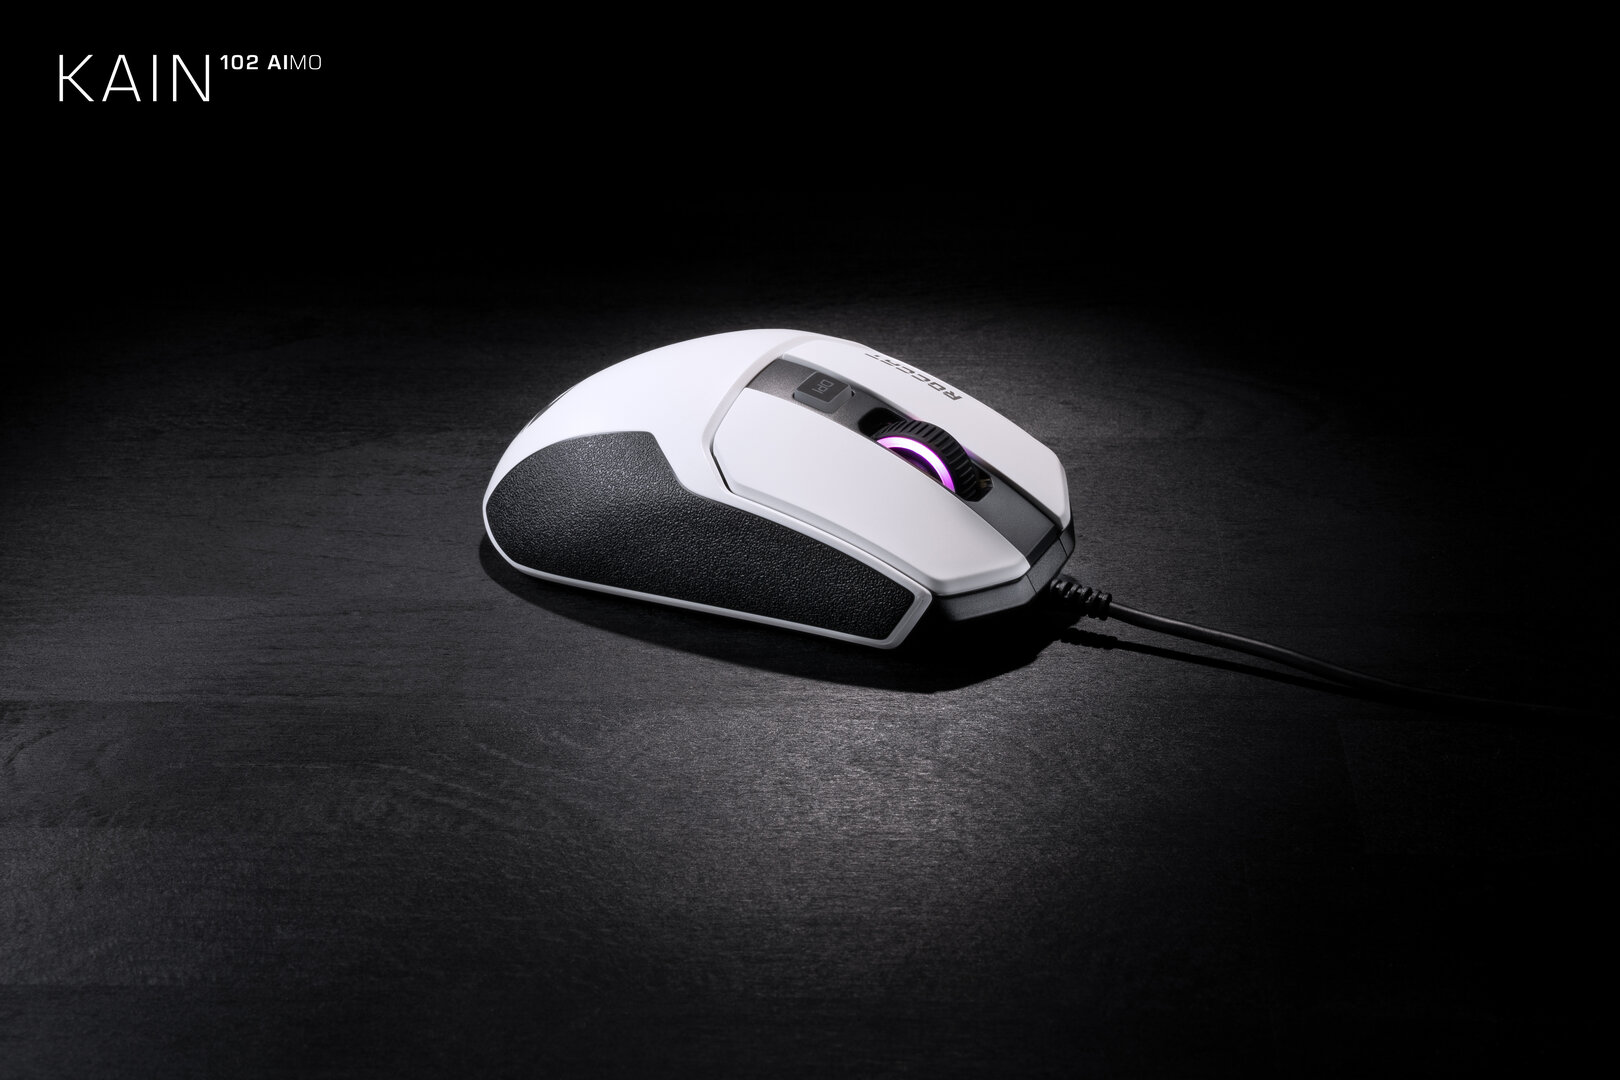 Roccat Kain 102 Aimo